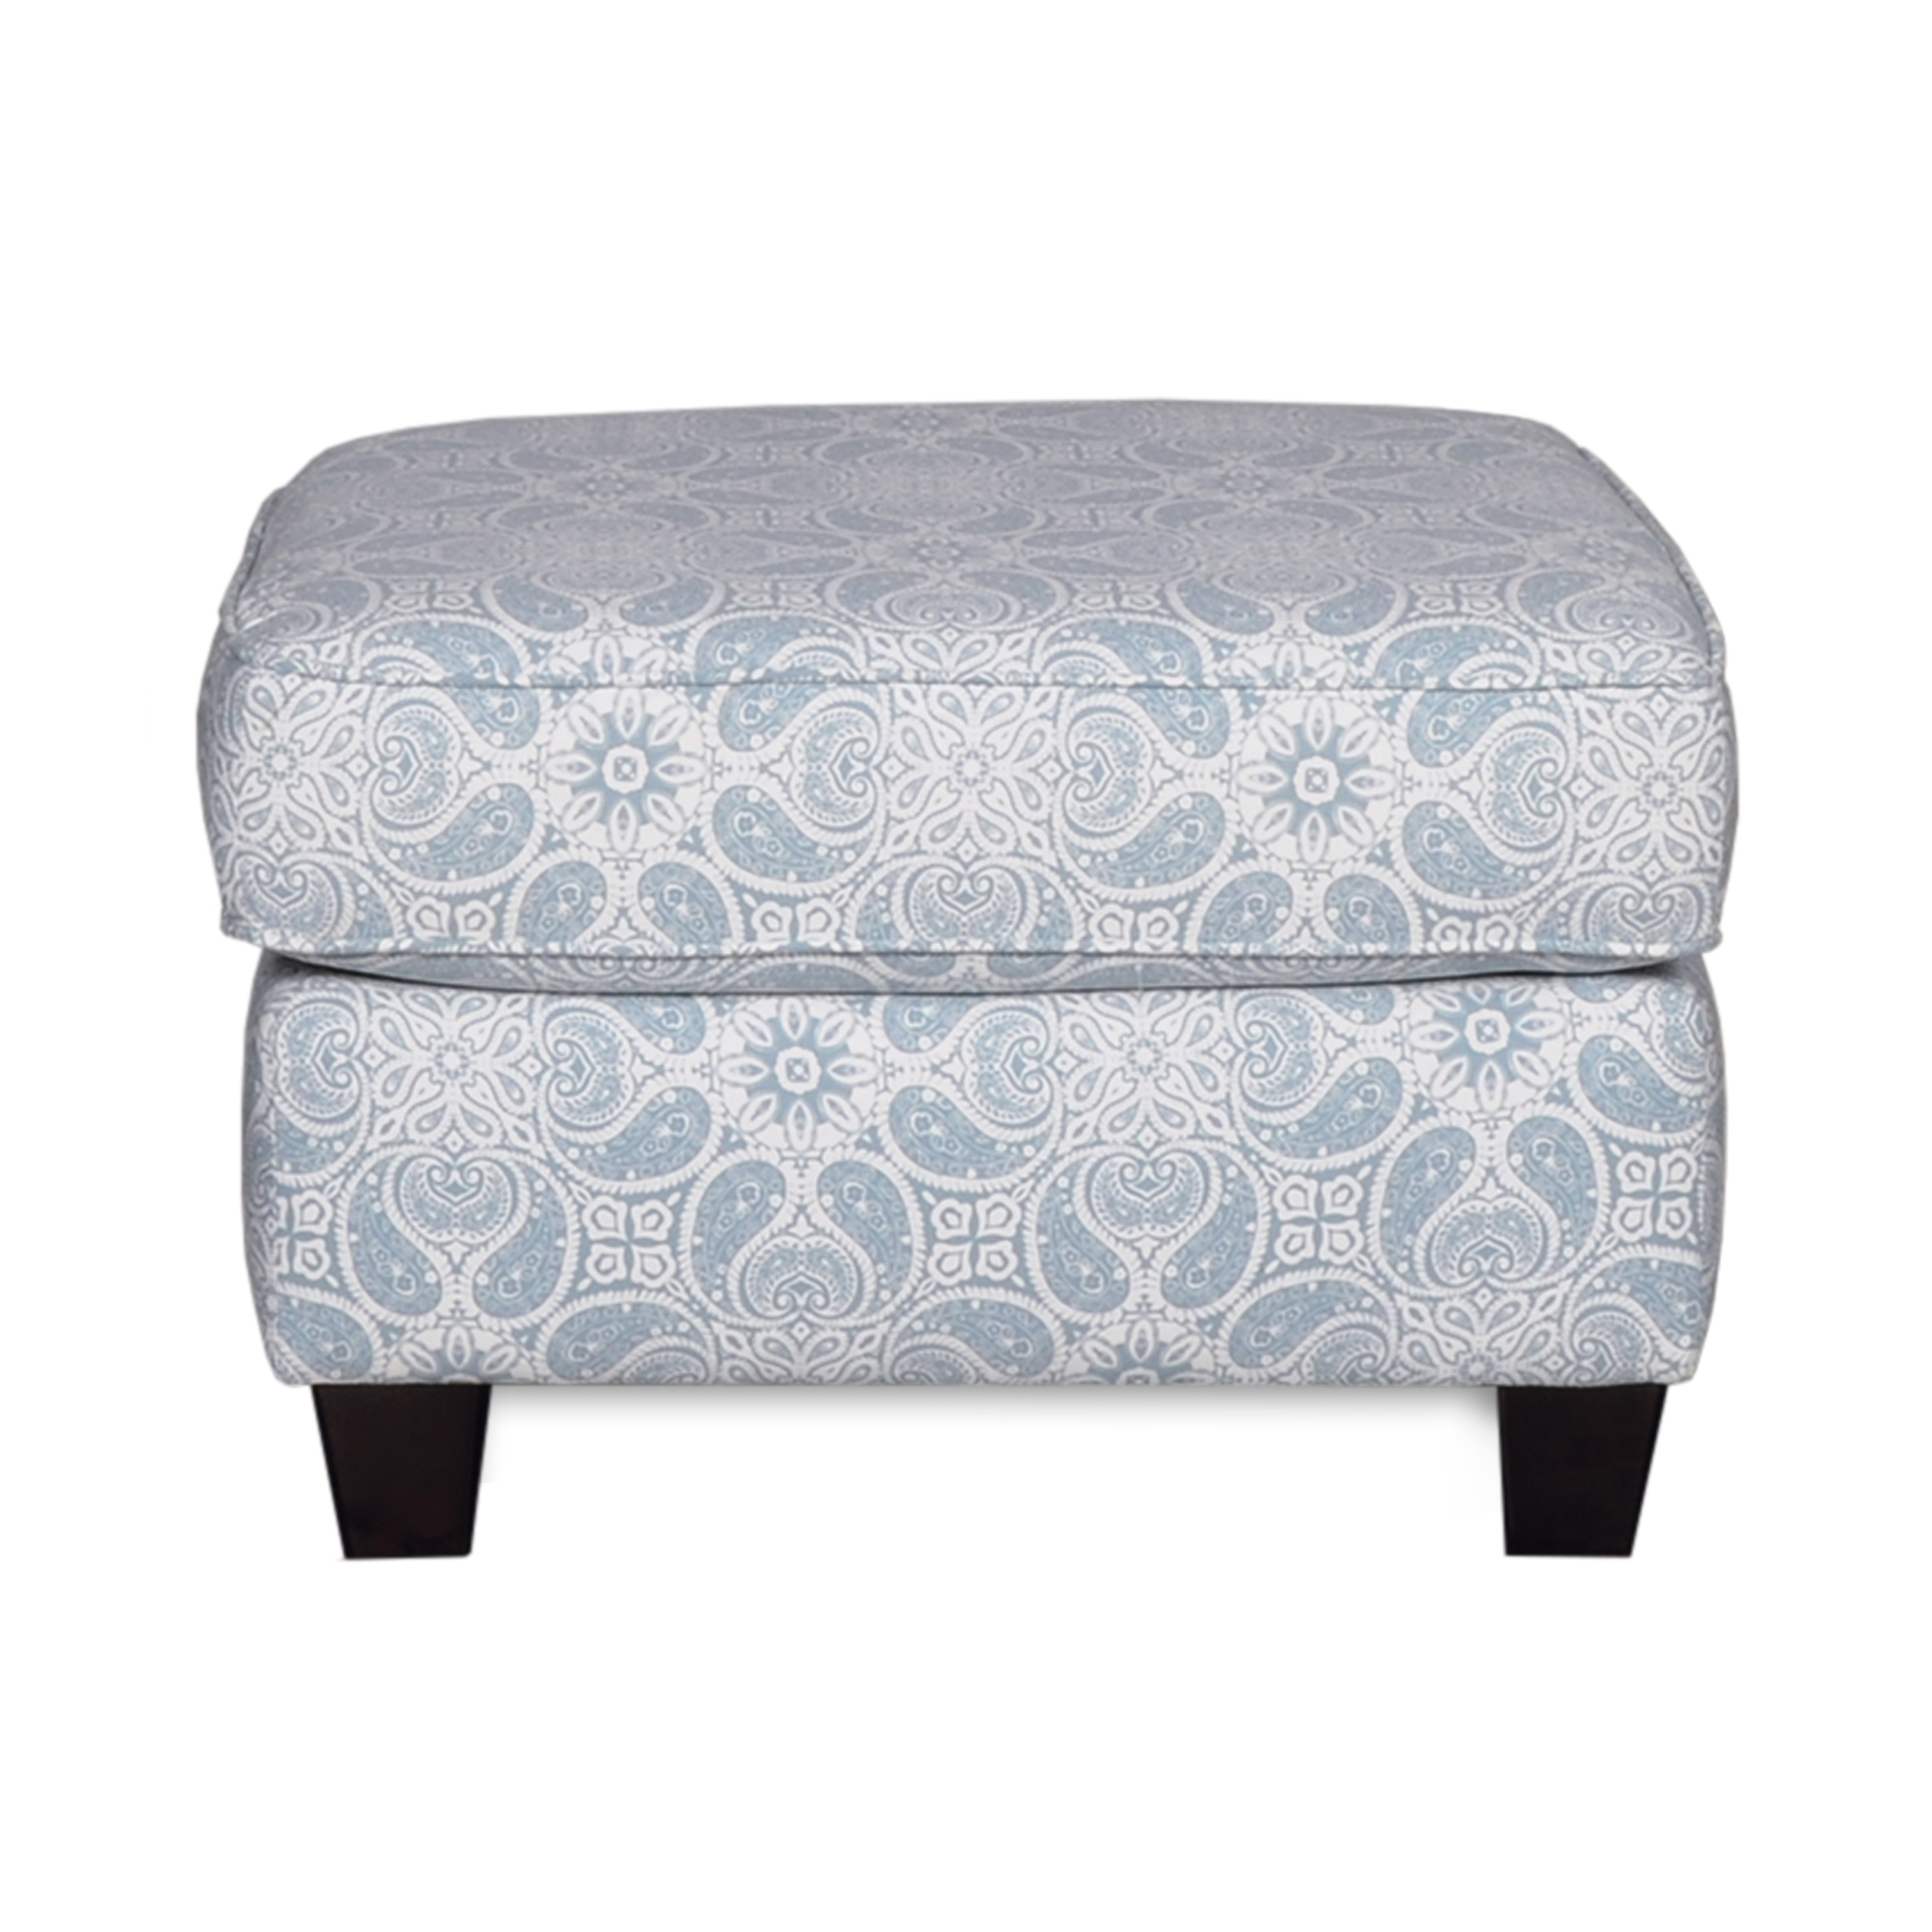 Living Room Ottoman - Upholstered Fabric|Contemporary Casual Accent Design to Match Armchair, Loveseat, or Sofa Couch